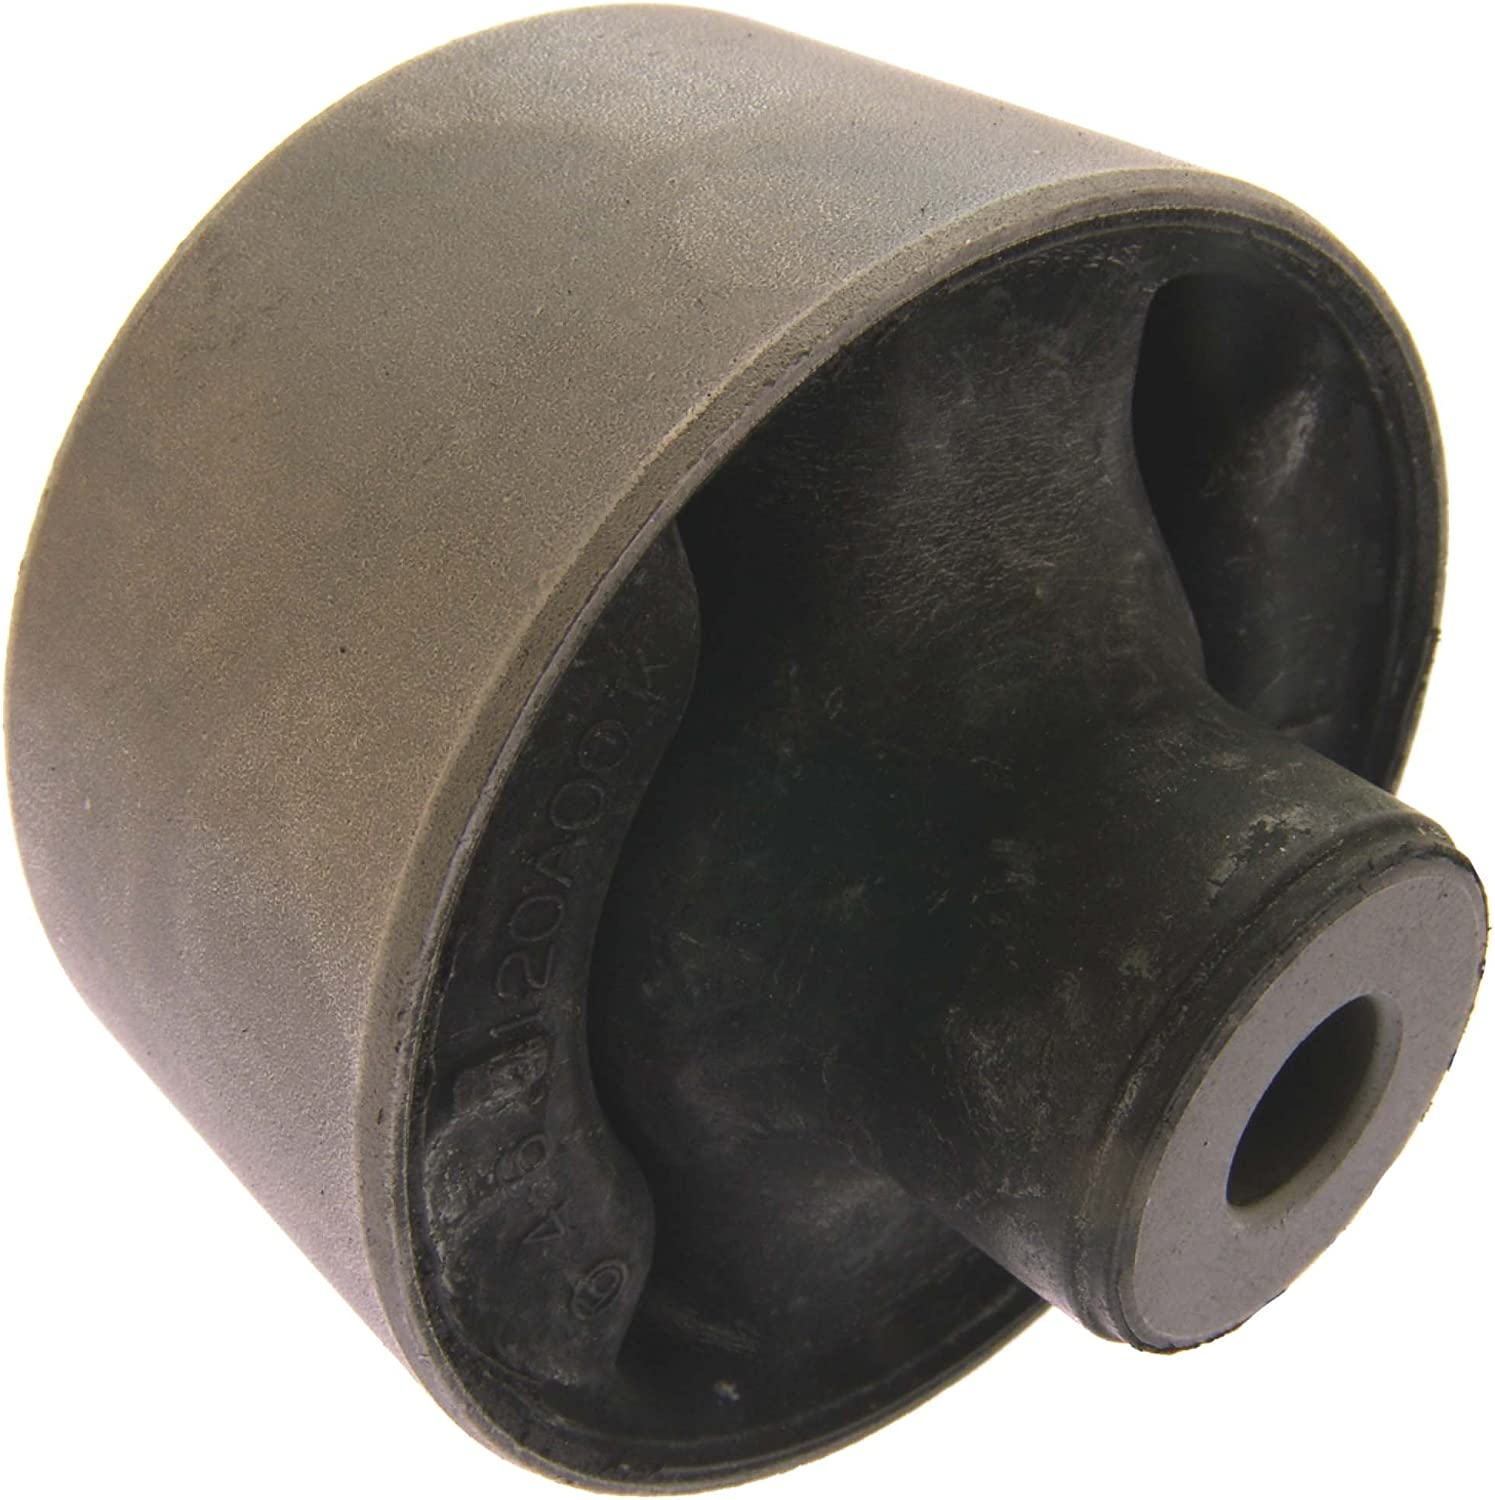 FEBEST MAB-072 Arm Bushing for Lateral Control Arm